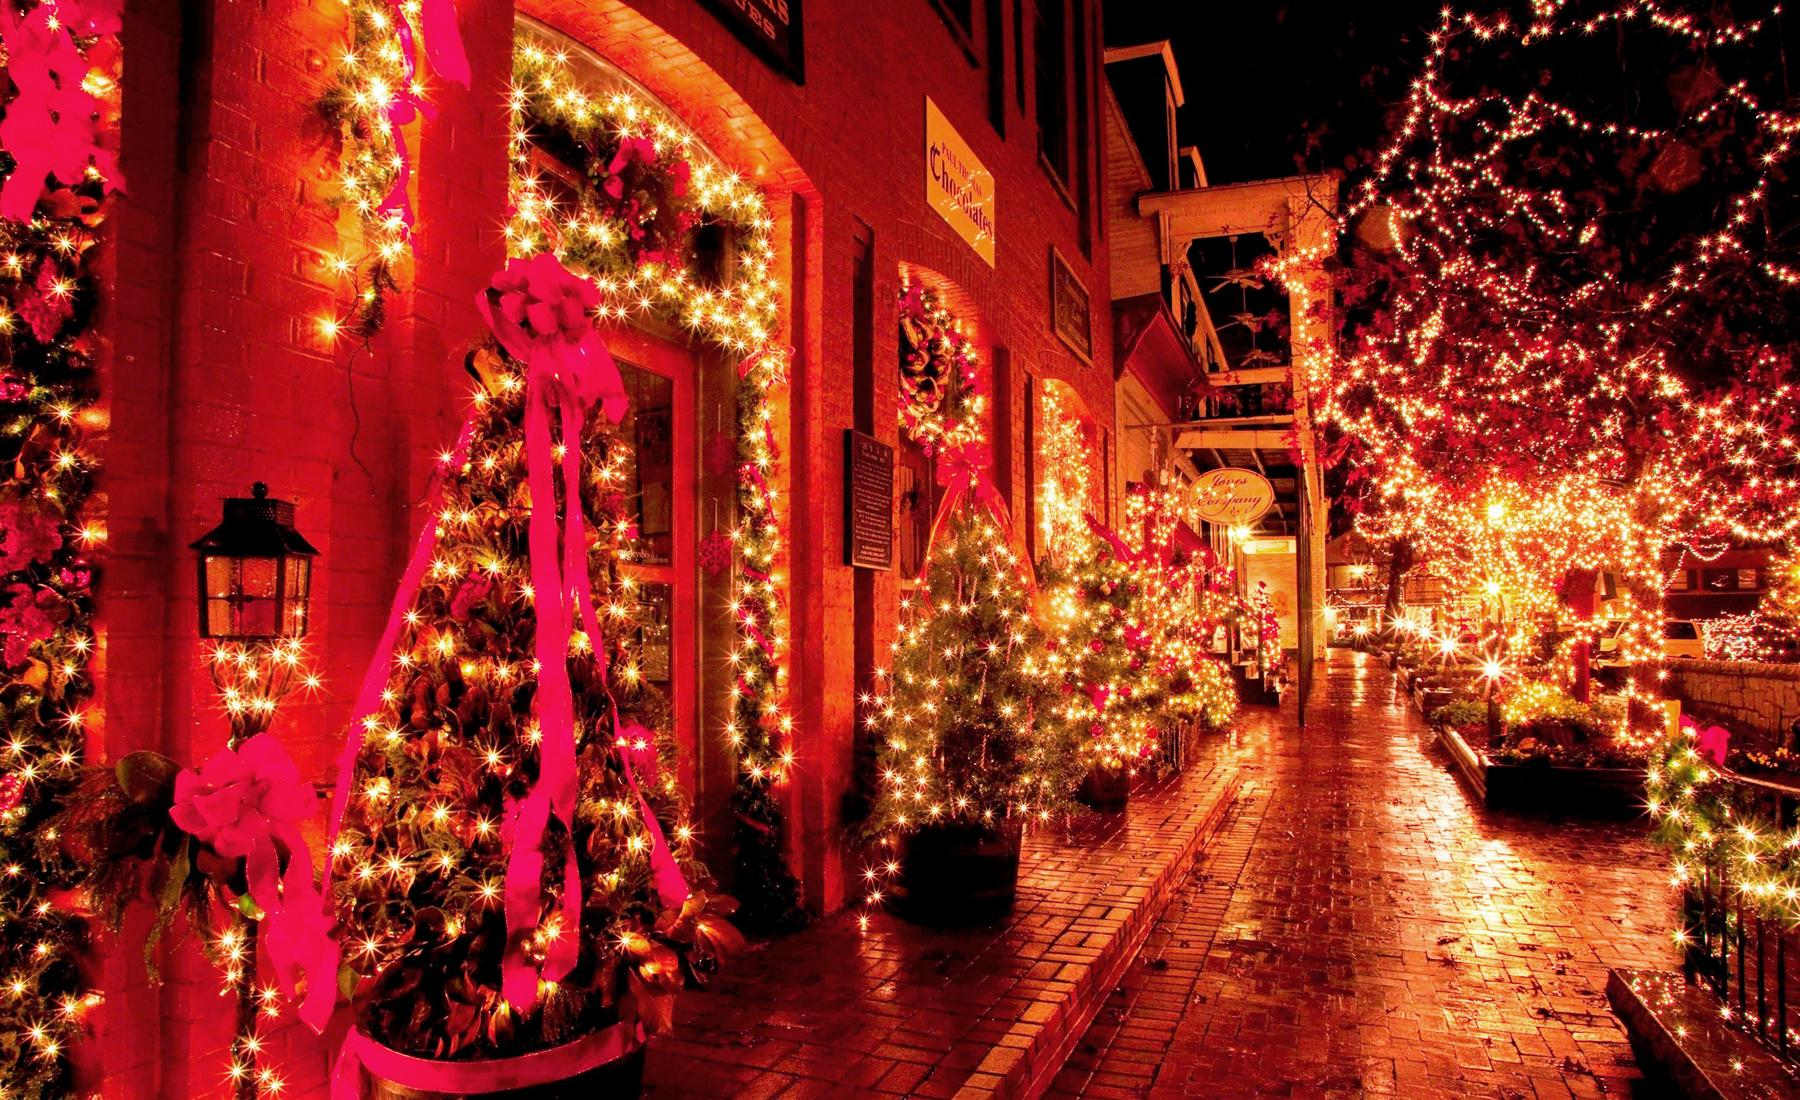 15 christmas obsessed towns - Christmas Town Decorations